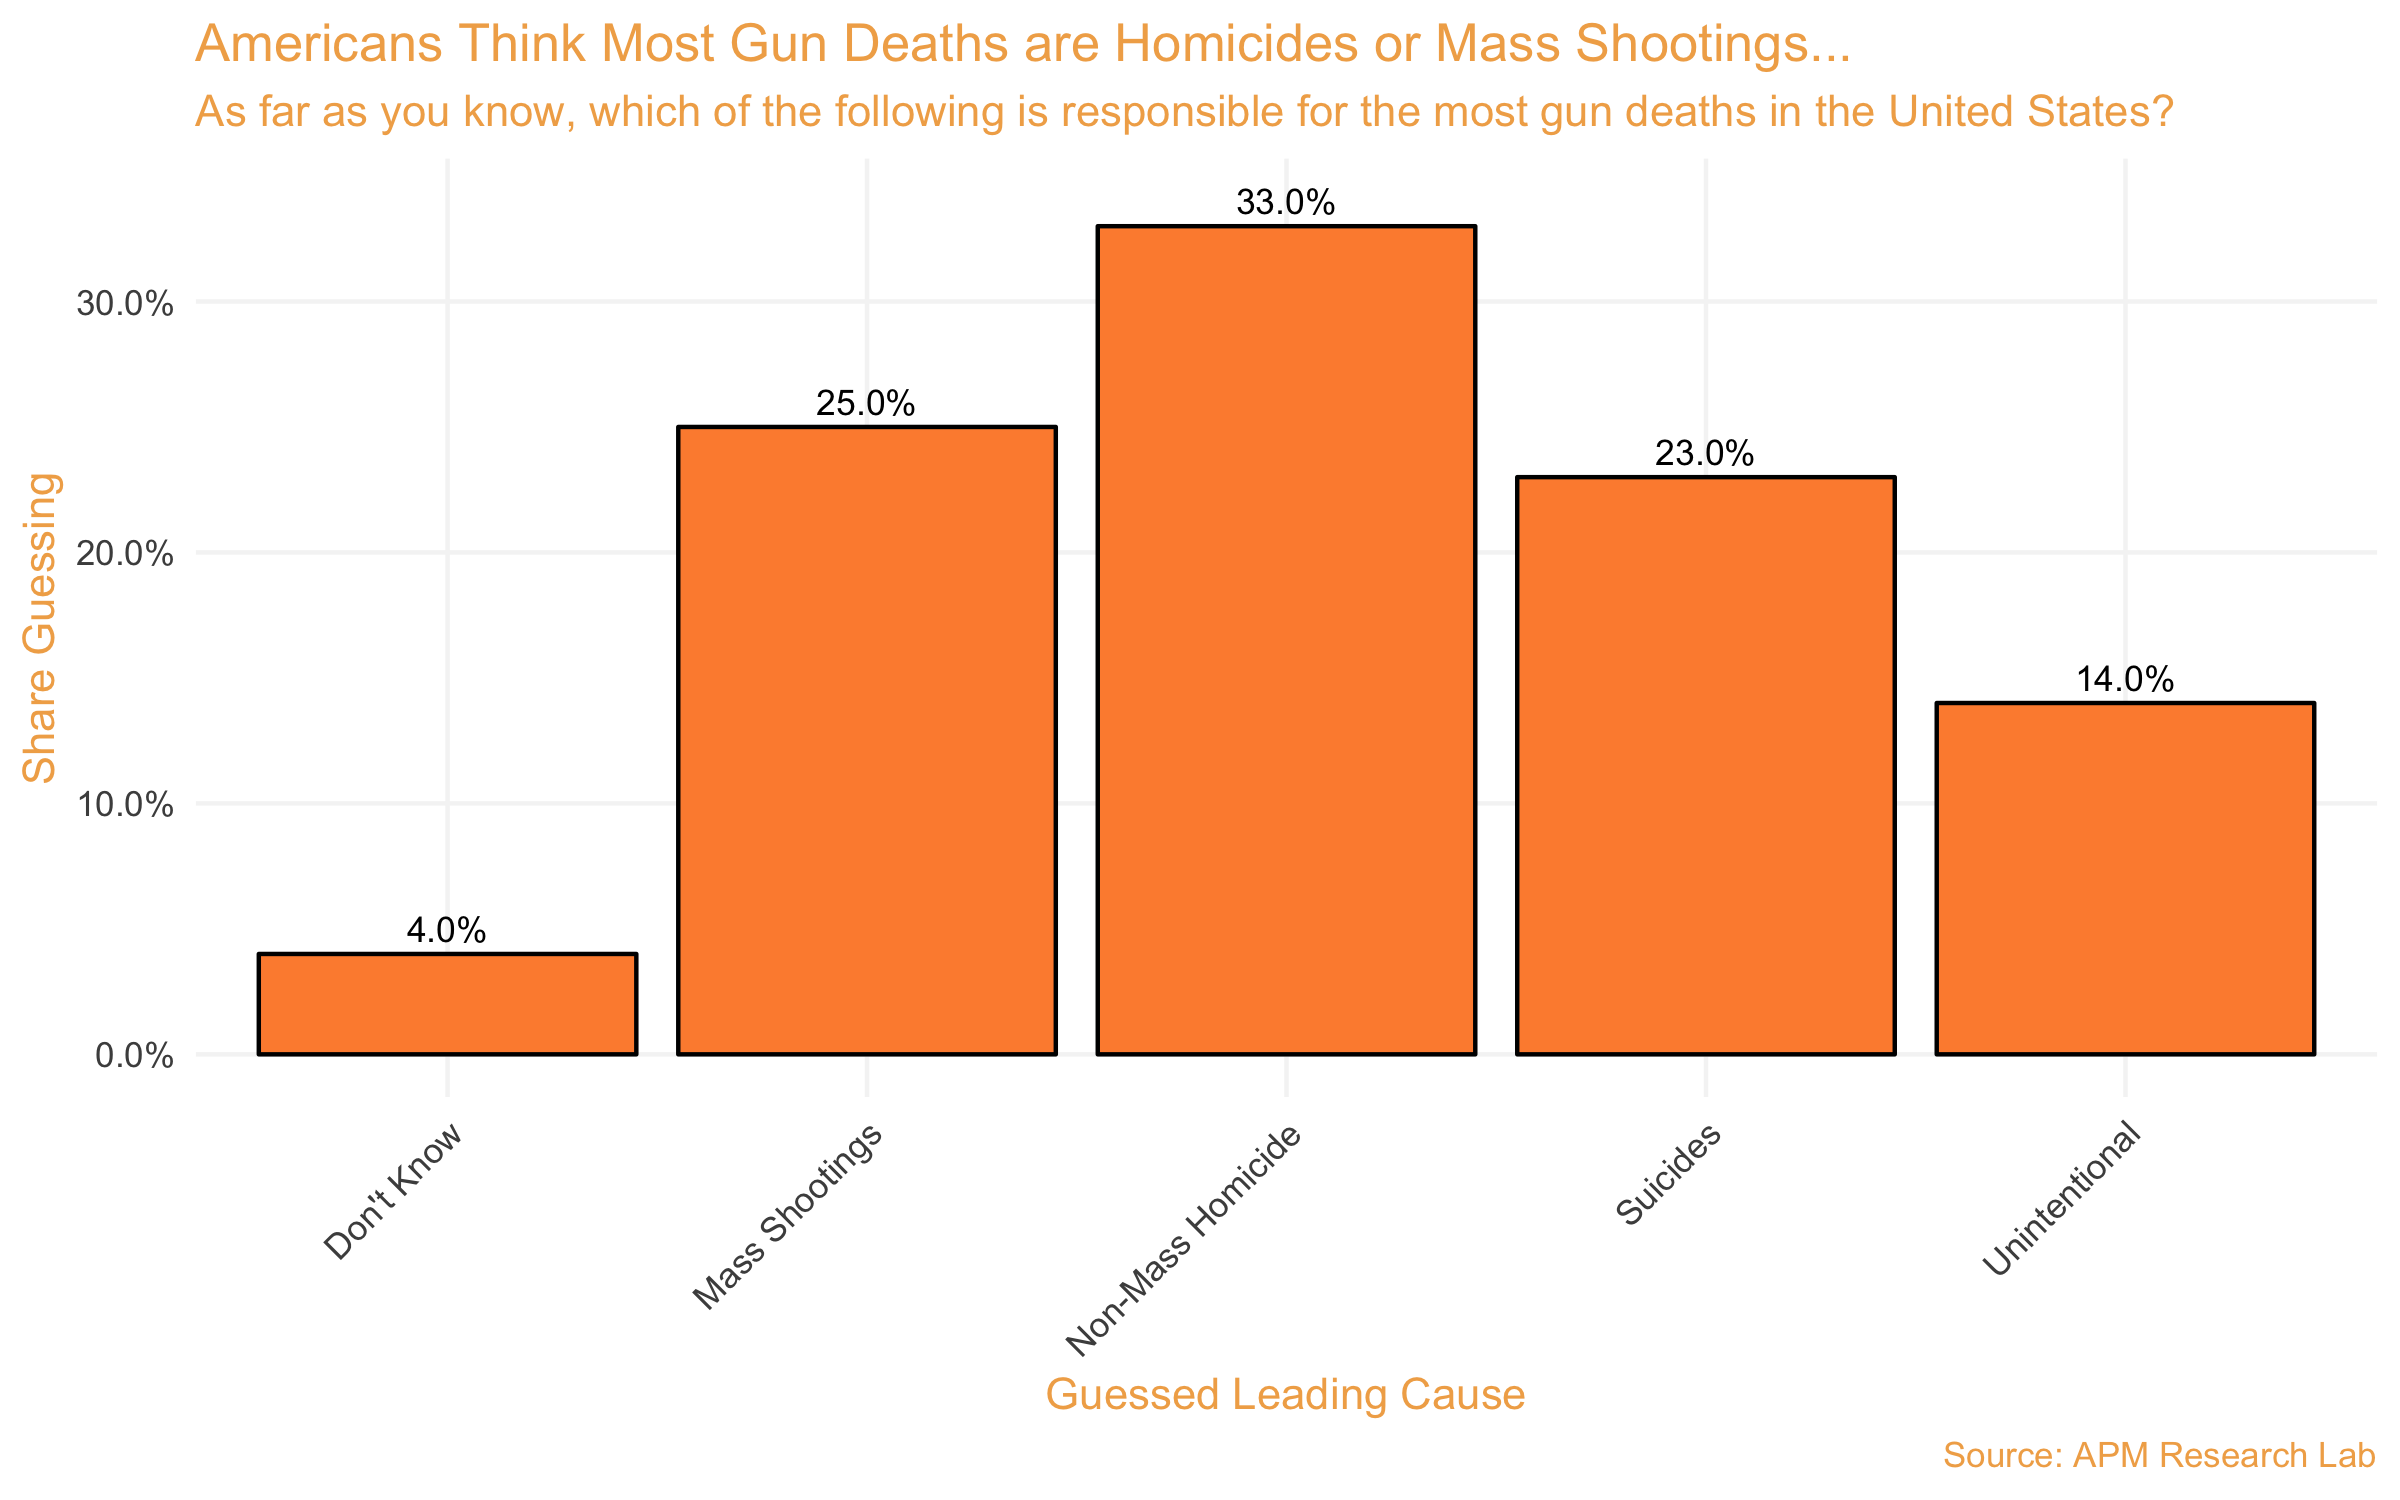 Widespread Ignorance: Americans Wrongly Believe Most Gun Deaths in US Are Homicides and Mass Shootings